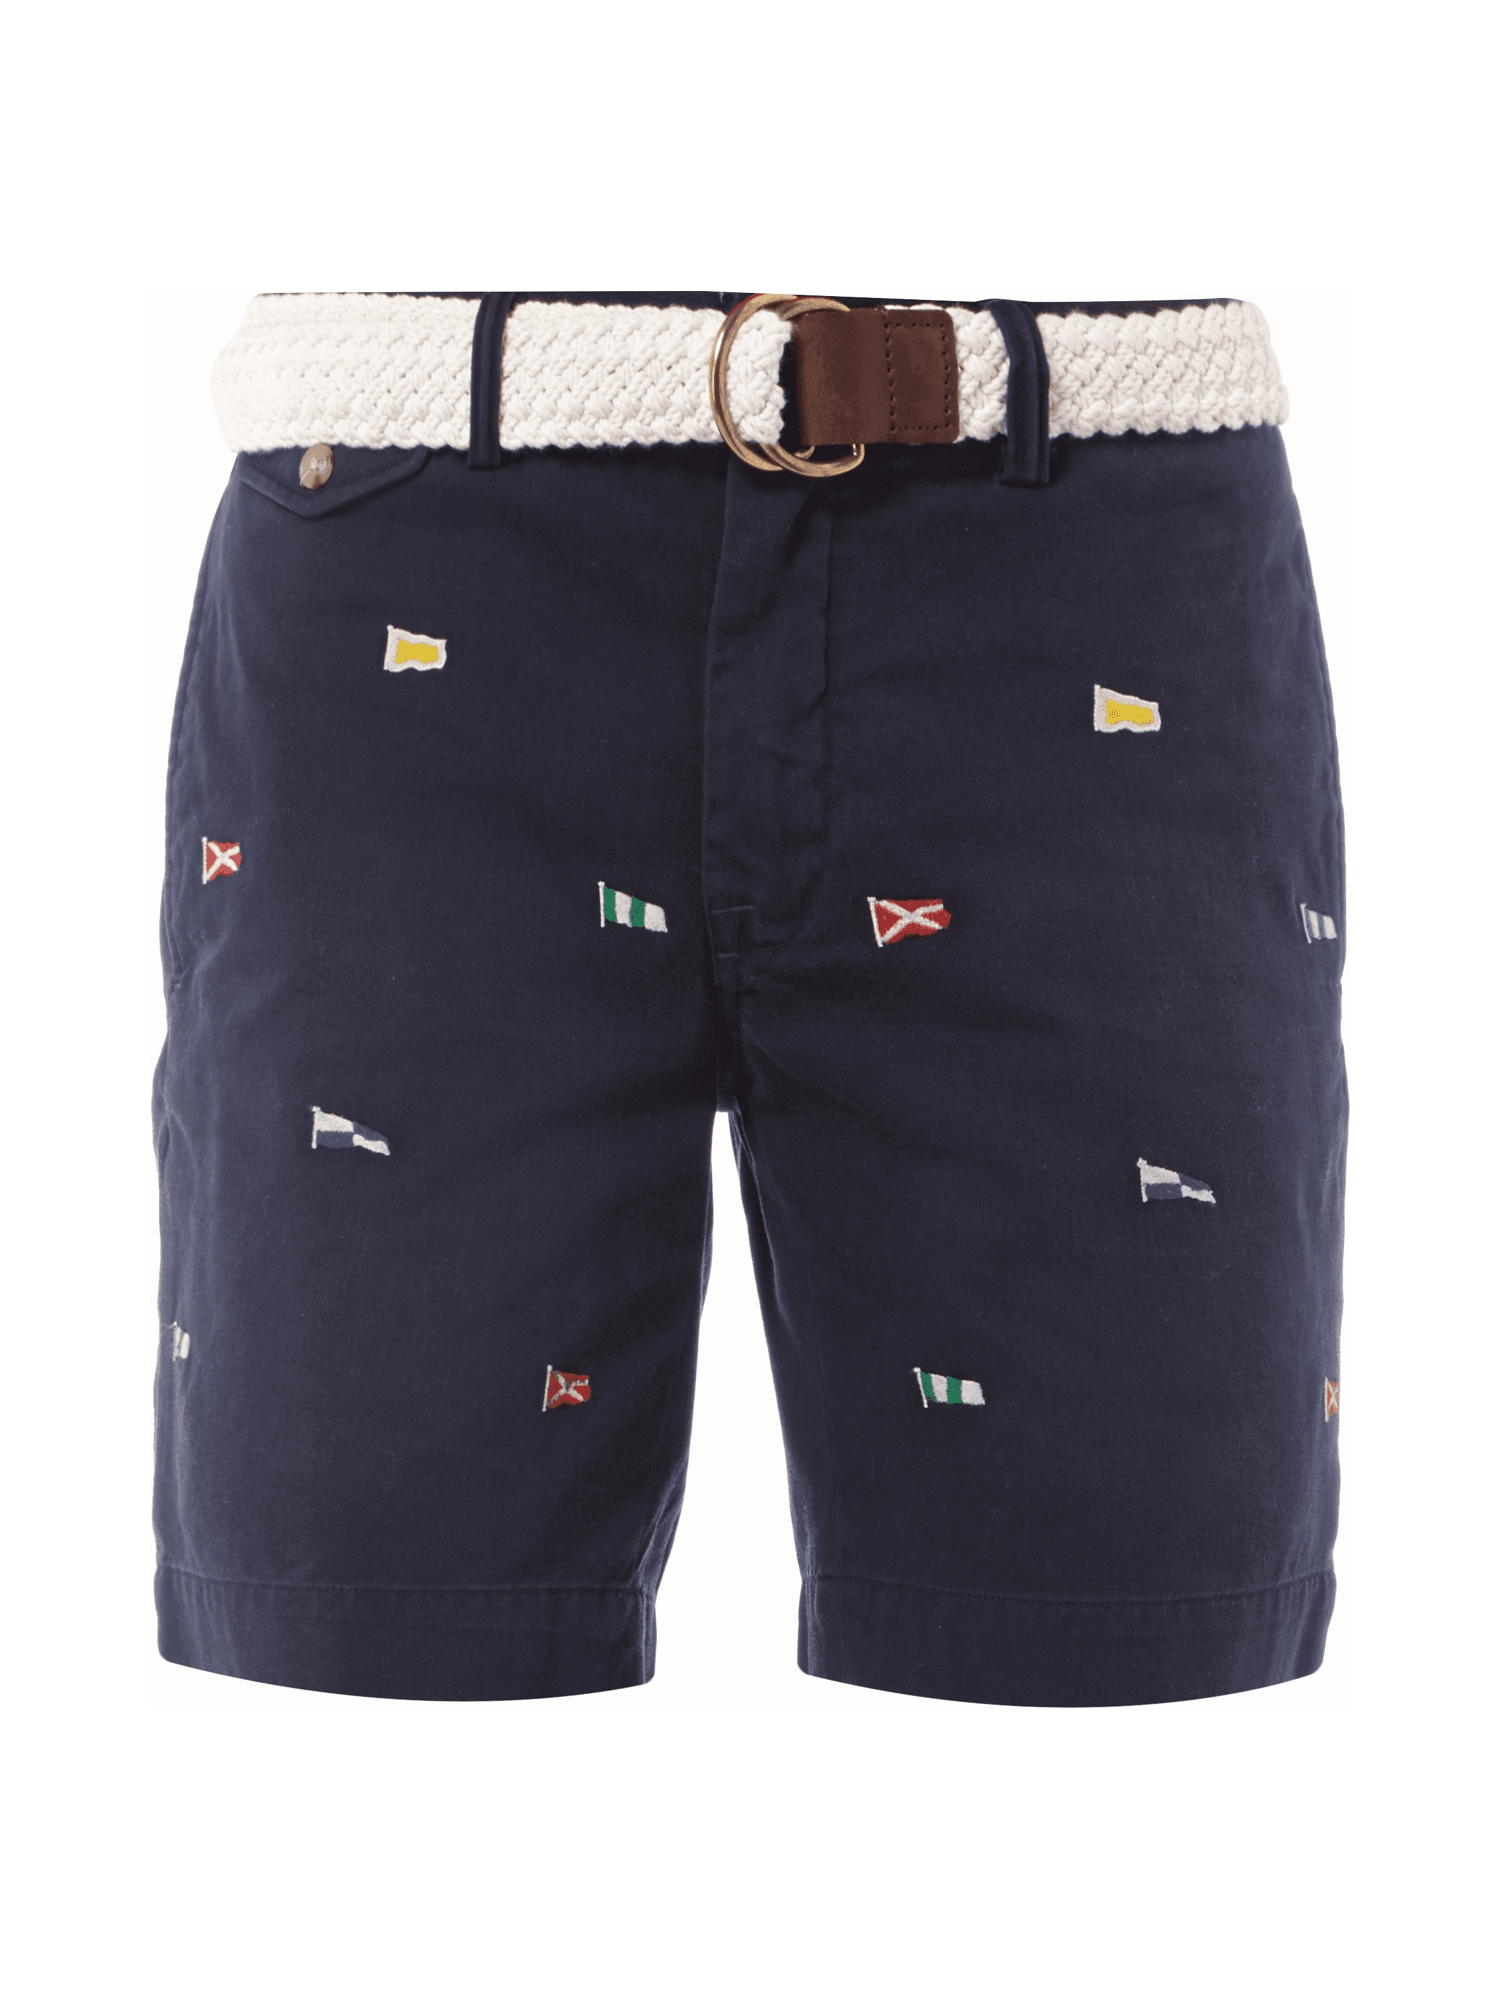 polo ralph lauren shorts mit motiv stickerei herren hose. Black Bedroom Furniture Sets. Home Design Ideas